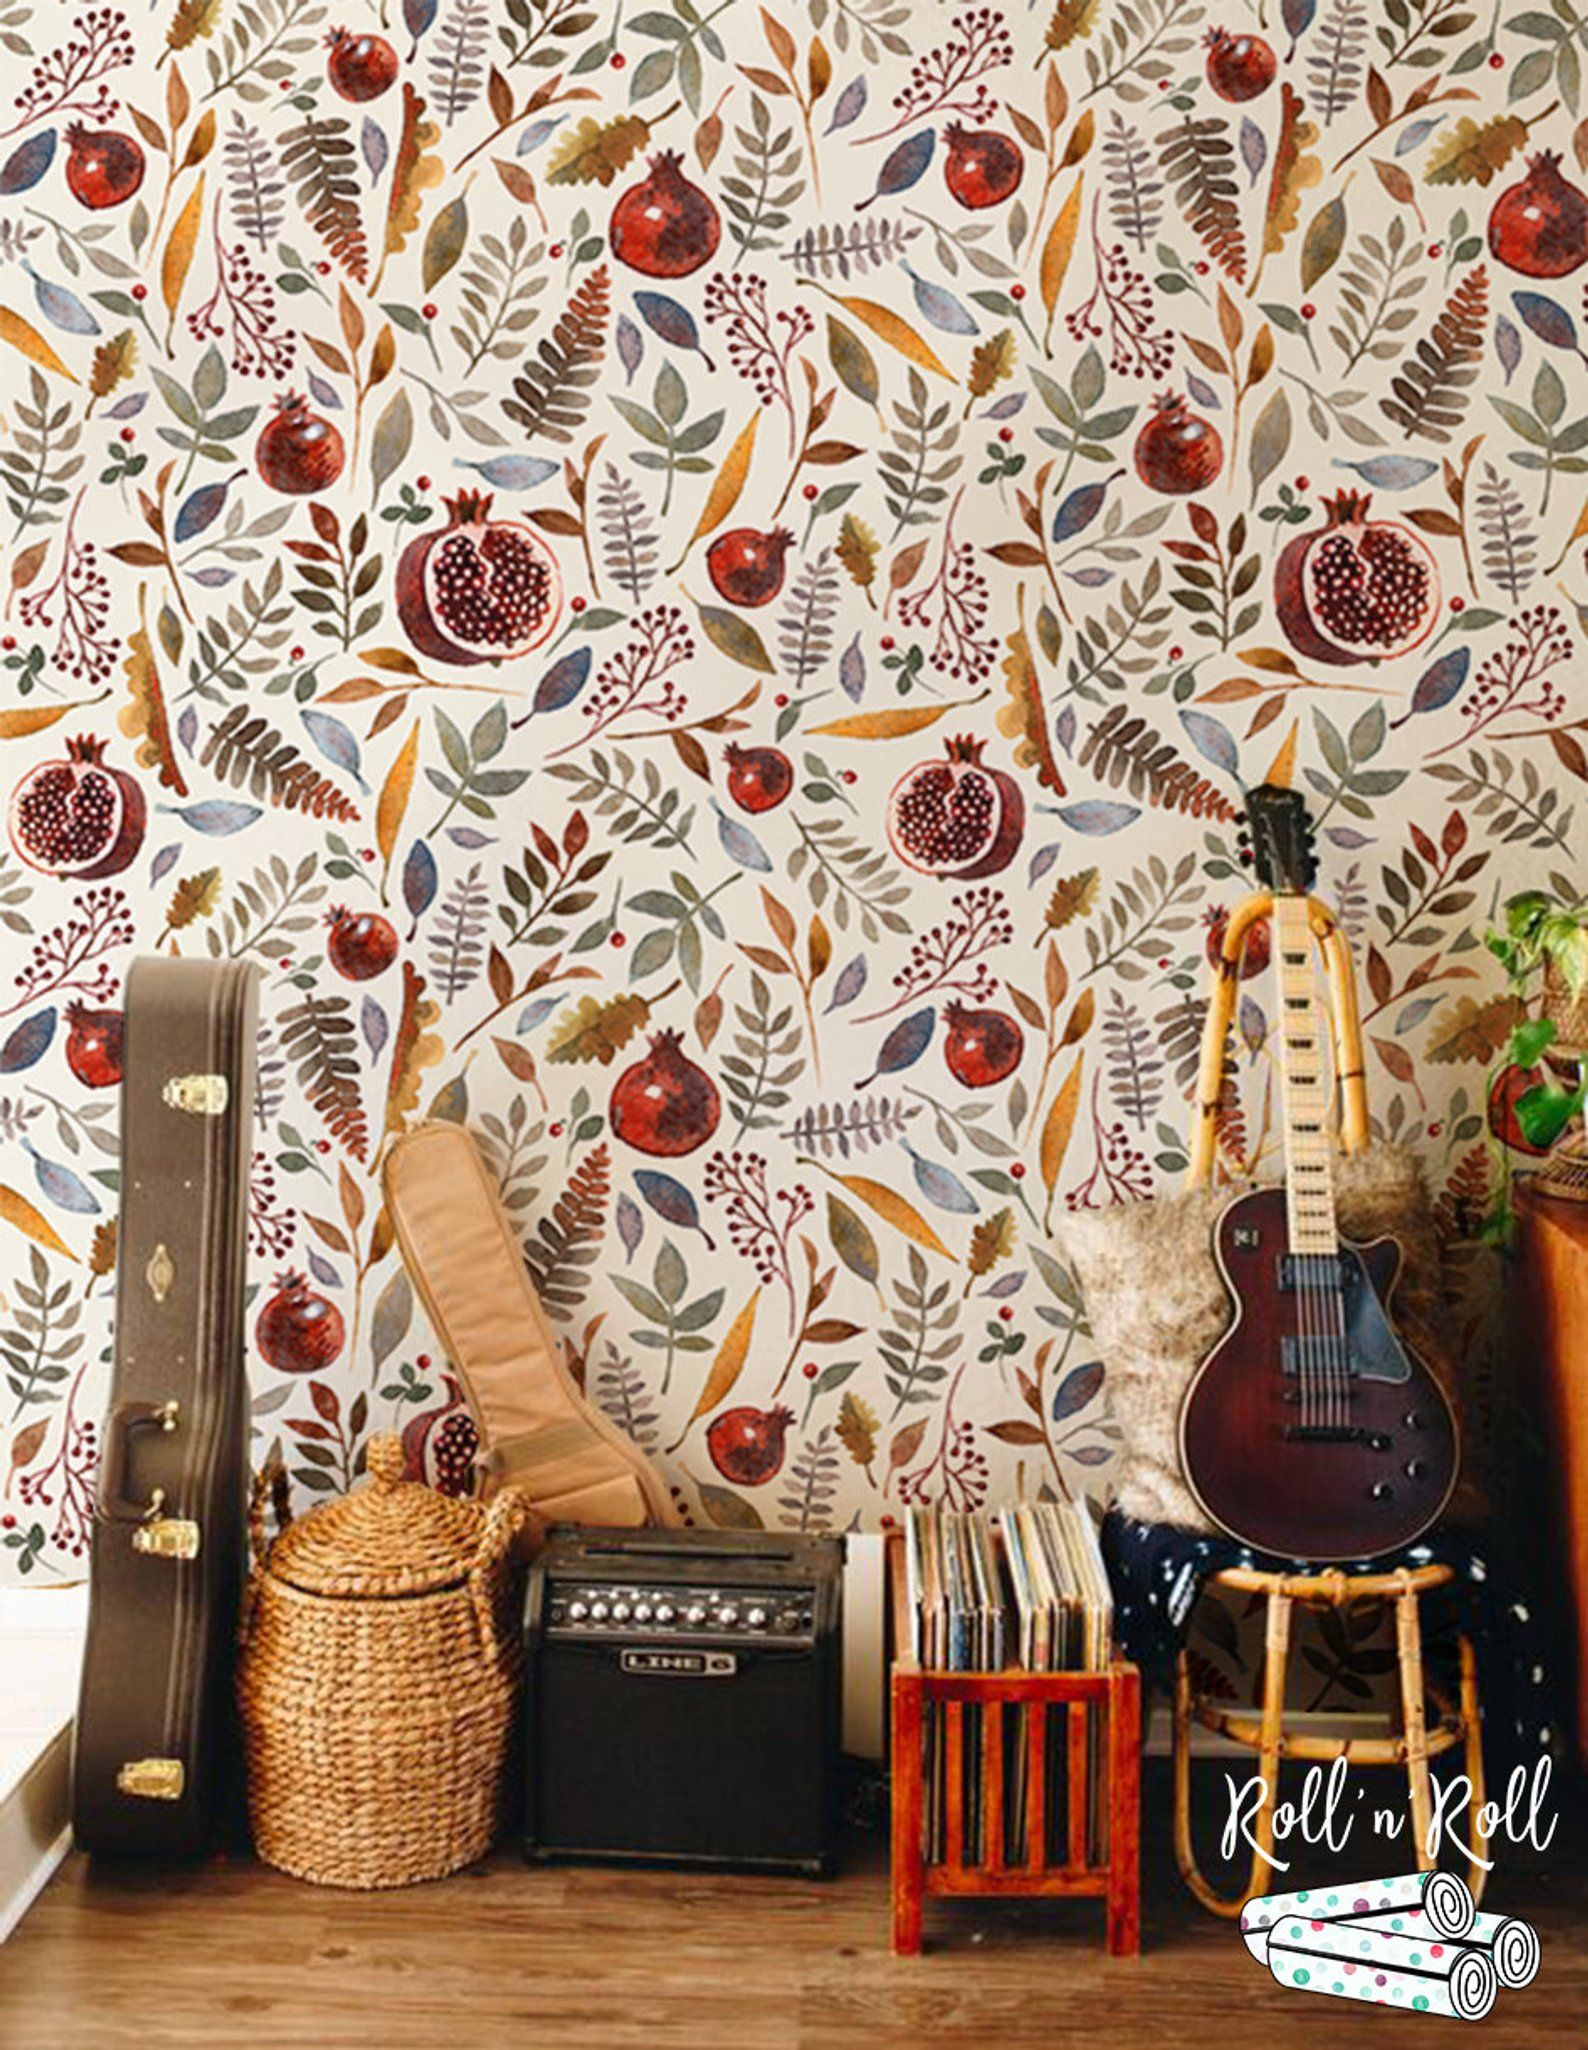 Floral And Fruit Removable Wallpaper Vintage Watercolor Wall Mural Wallpaper Roll Self Adhesive Paper Wallpaper Pattern Wallpaper 22 Removable Wallpaper Paper Wallpaper Watercolor Walls